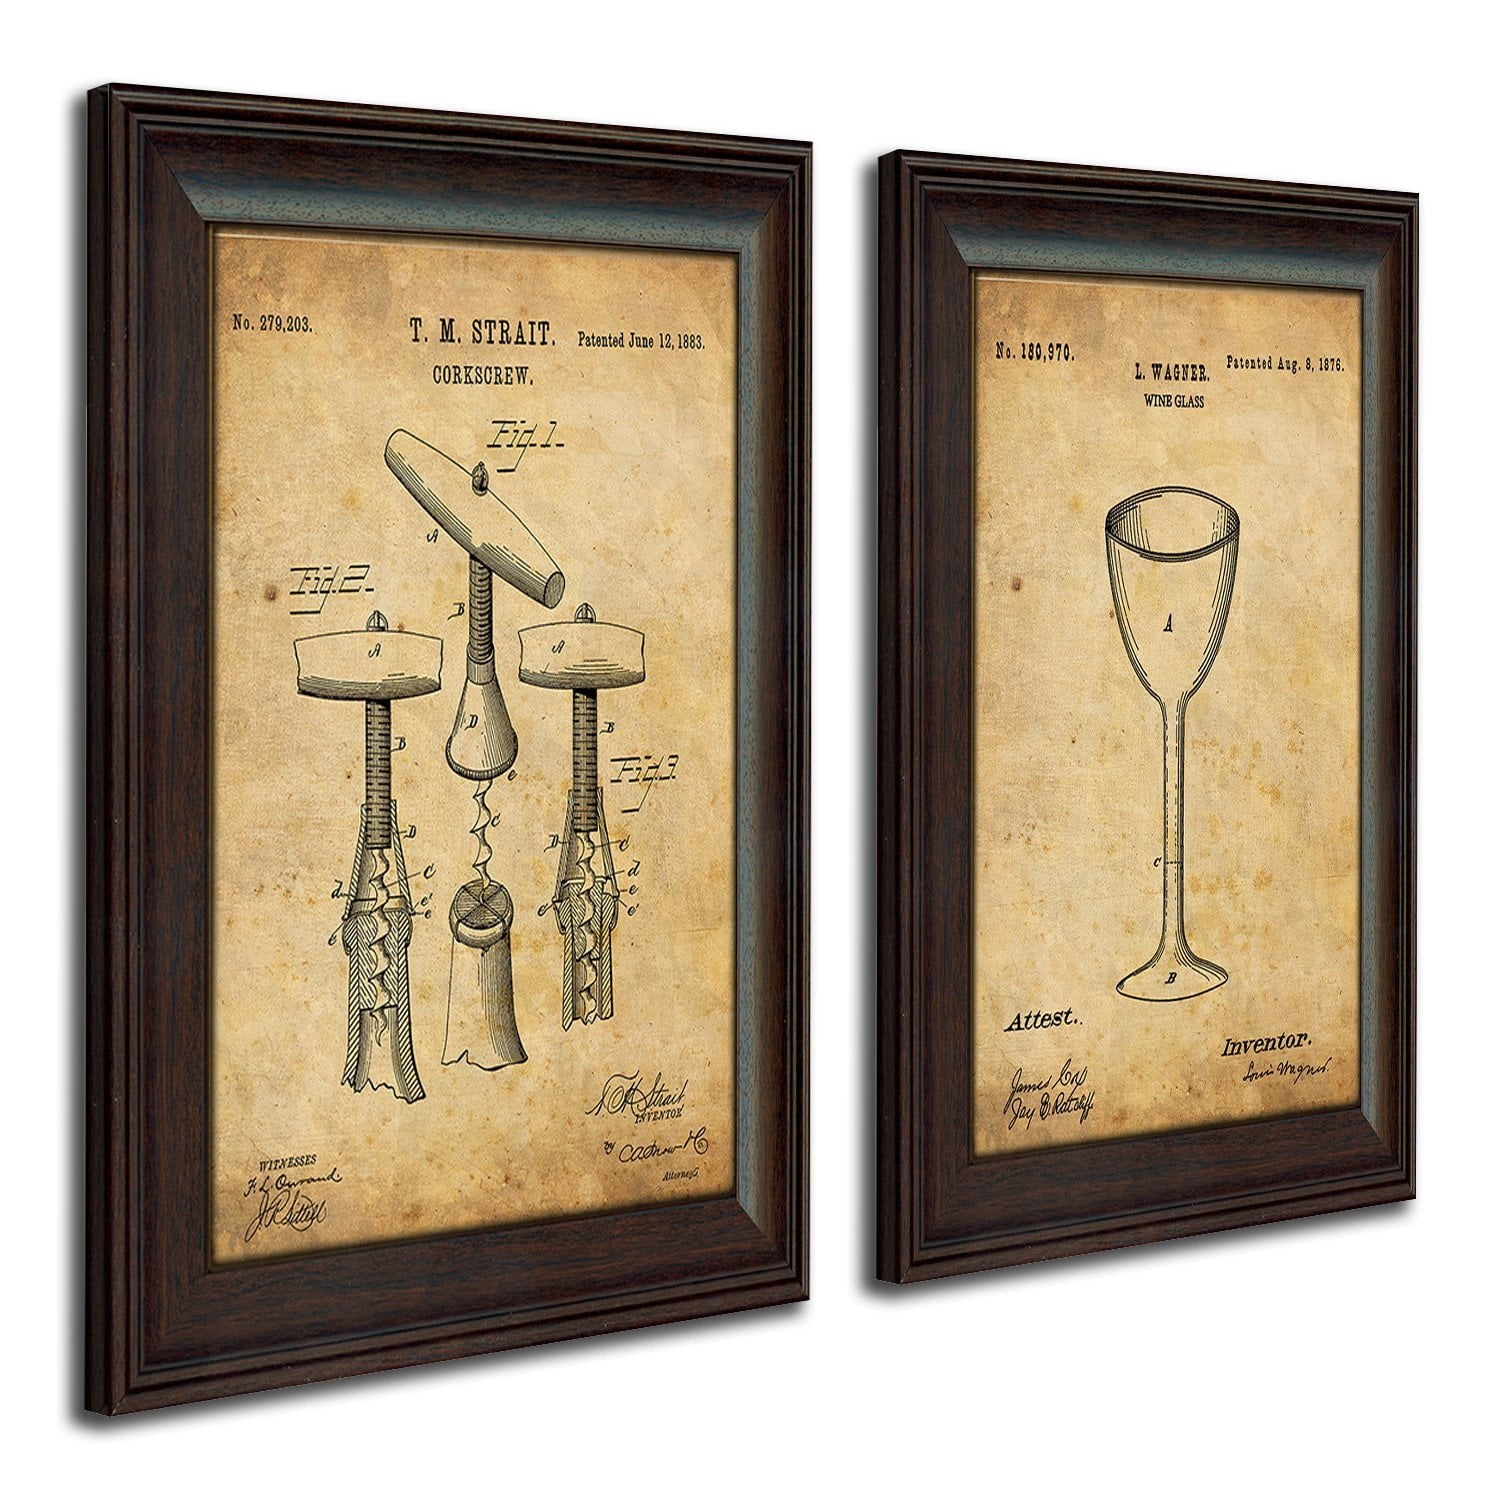 ... Framed Wine Art Using The Original Patent Art For A Cork Screw And Wine  Glass ...